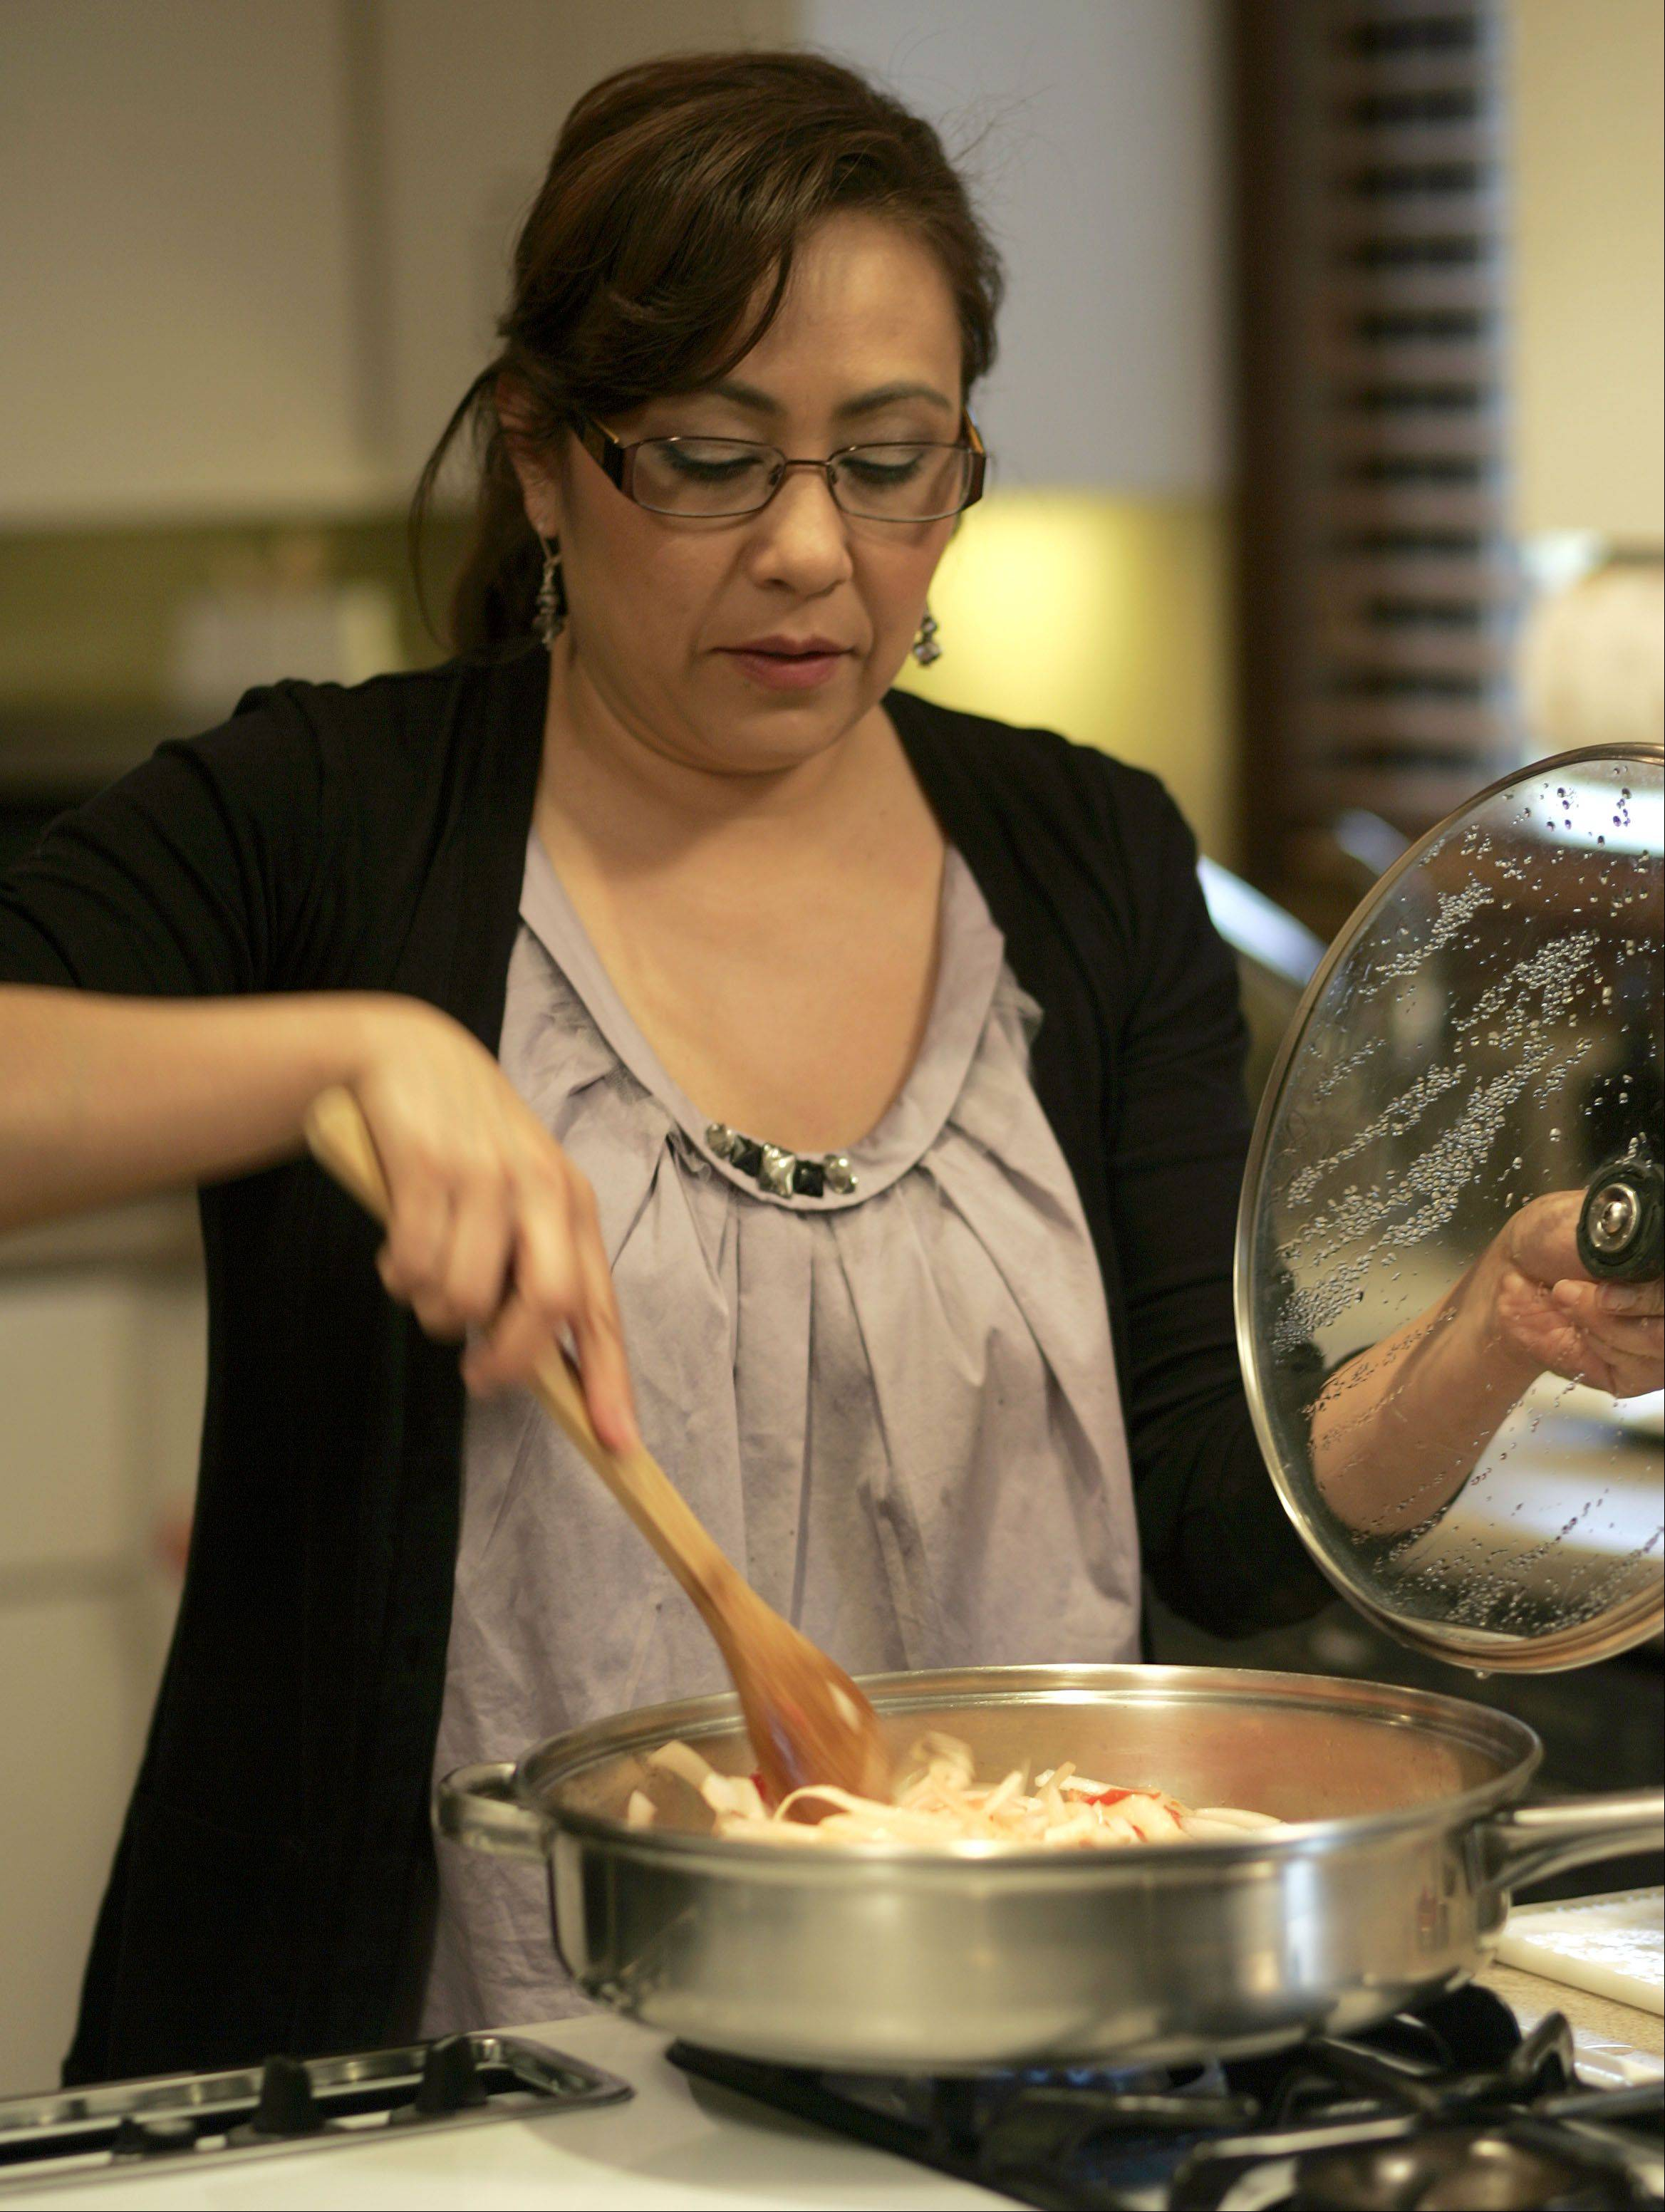 Yadira Soter creates authentic Mexican food in her St. Charles kitchen.